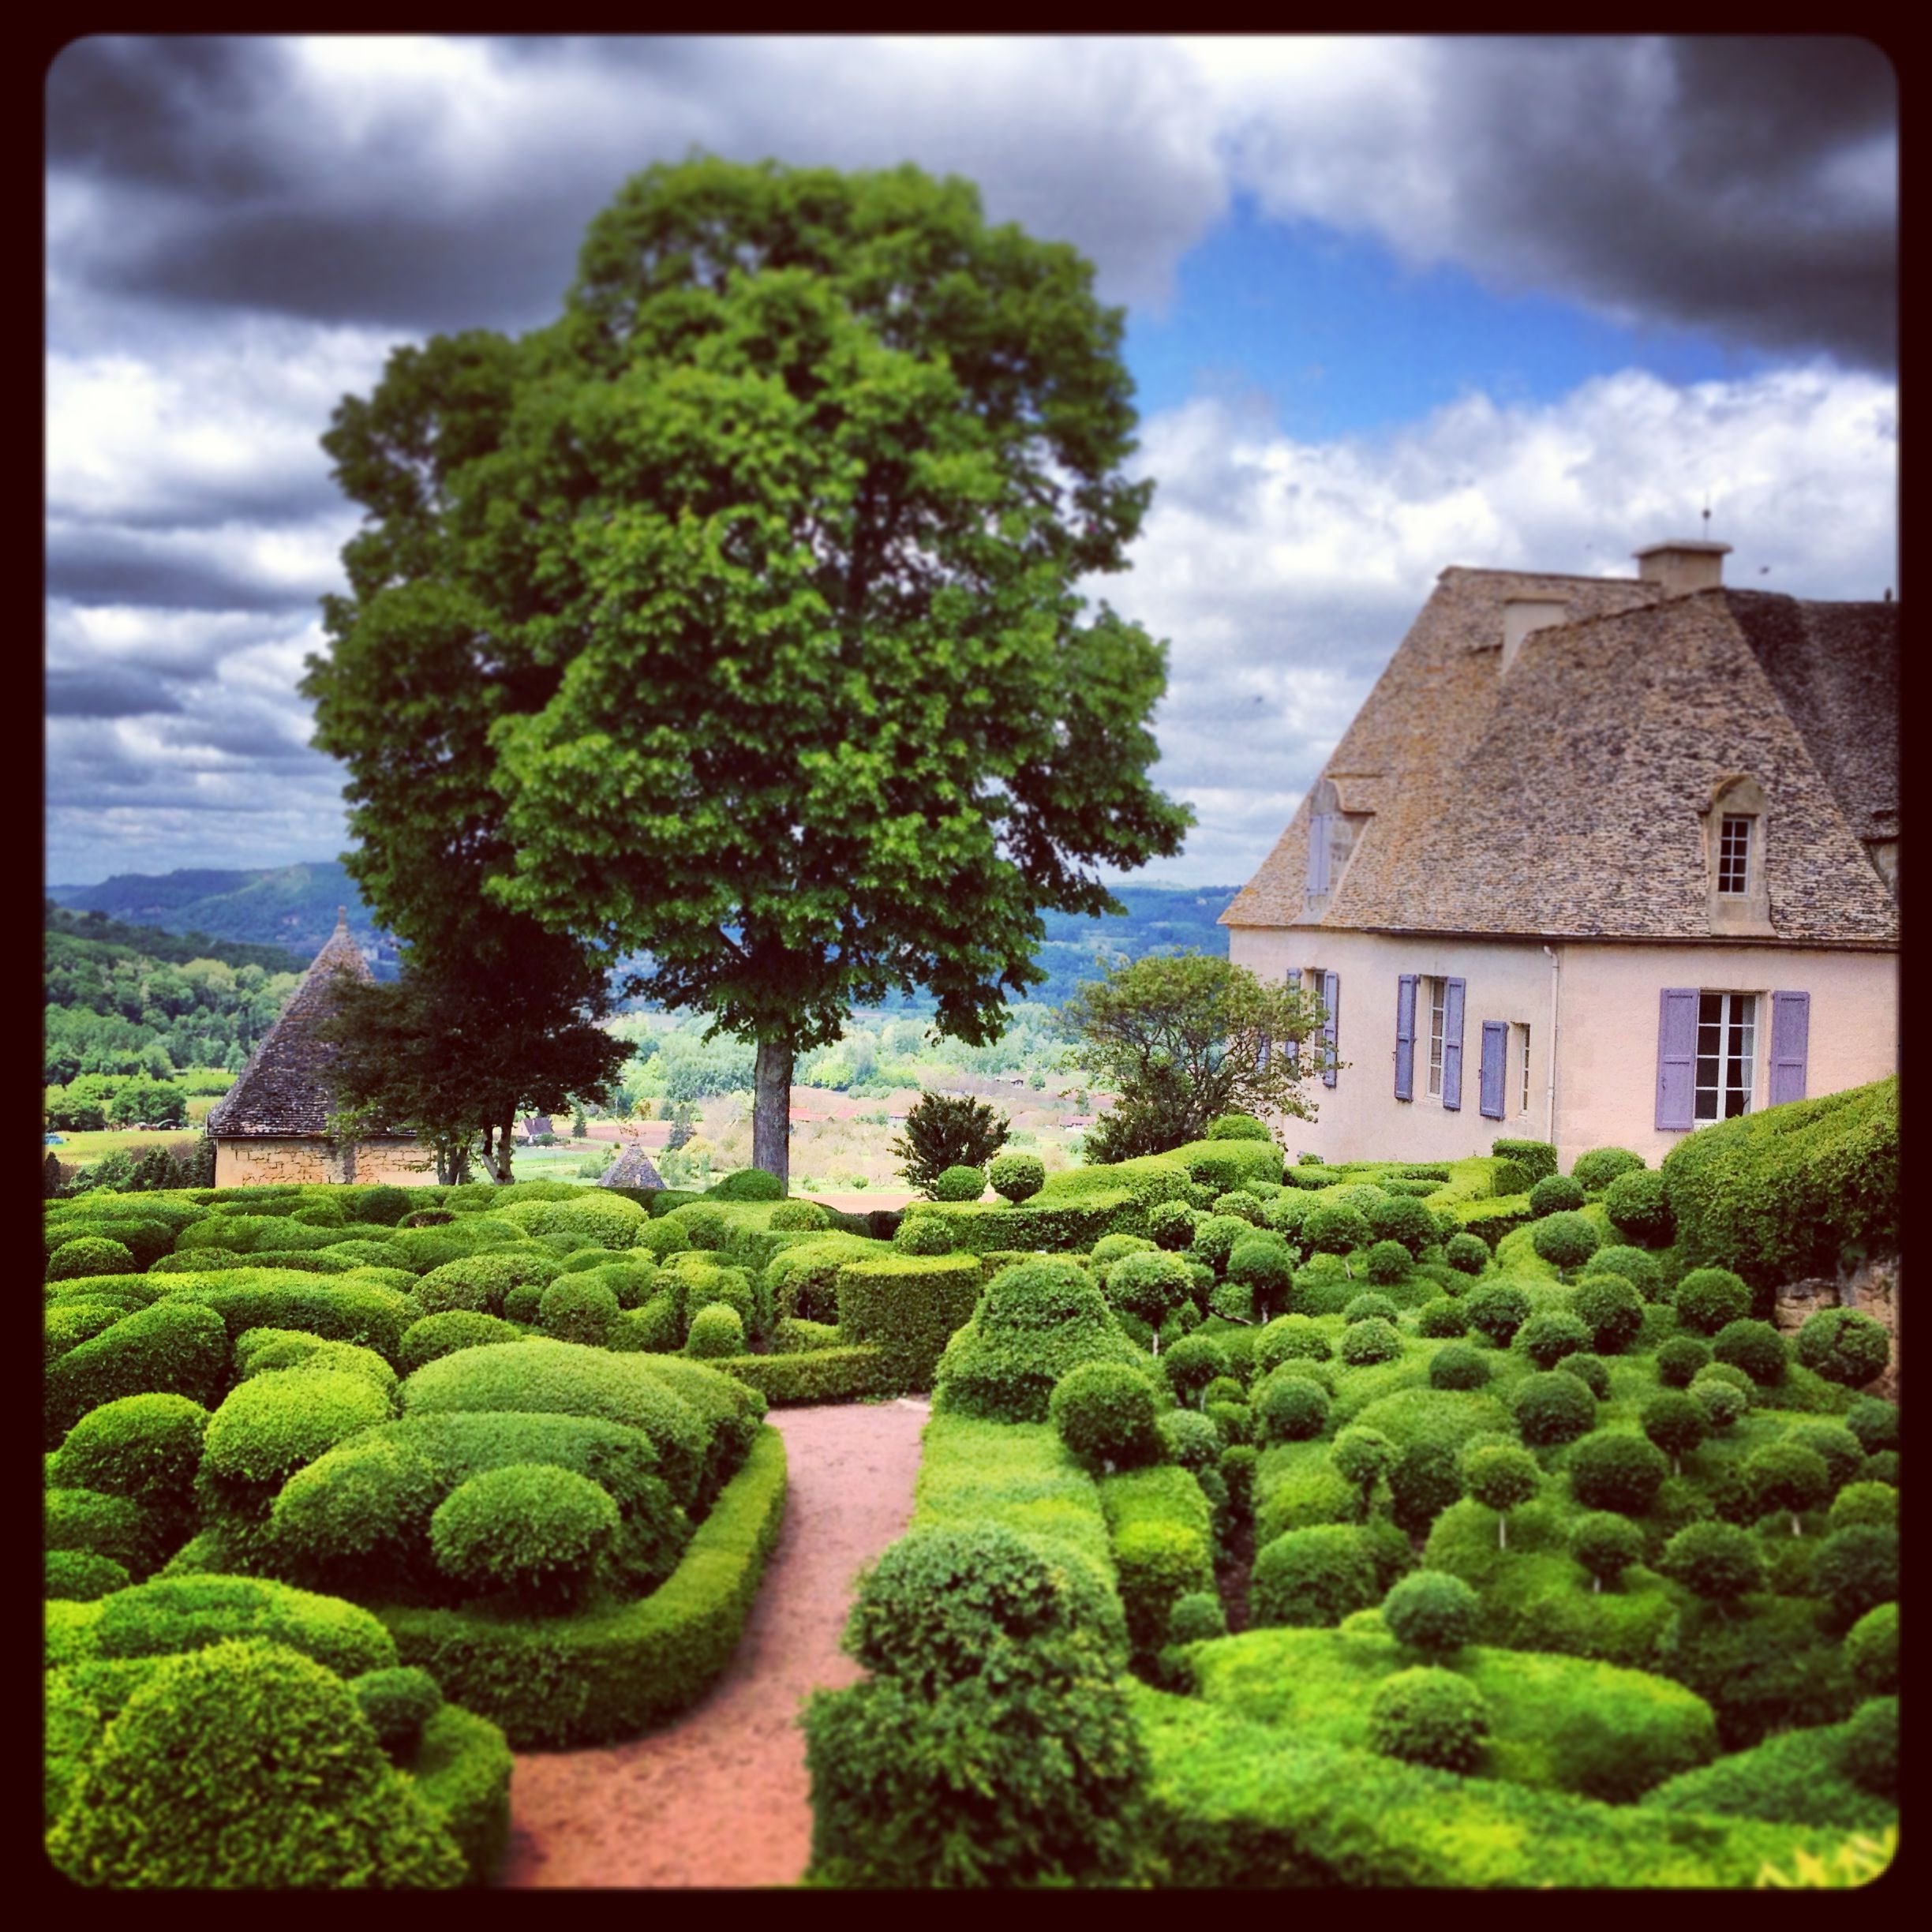 Jardins de Marquessac - a great example of cloud pruning. The gardens were created in the 19th century and then lost until they were restored in 1997.